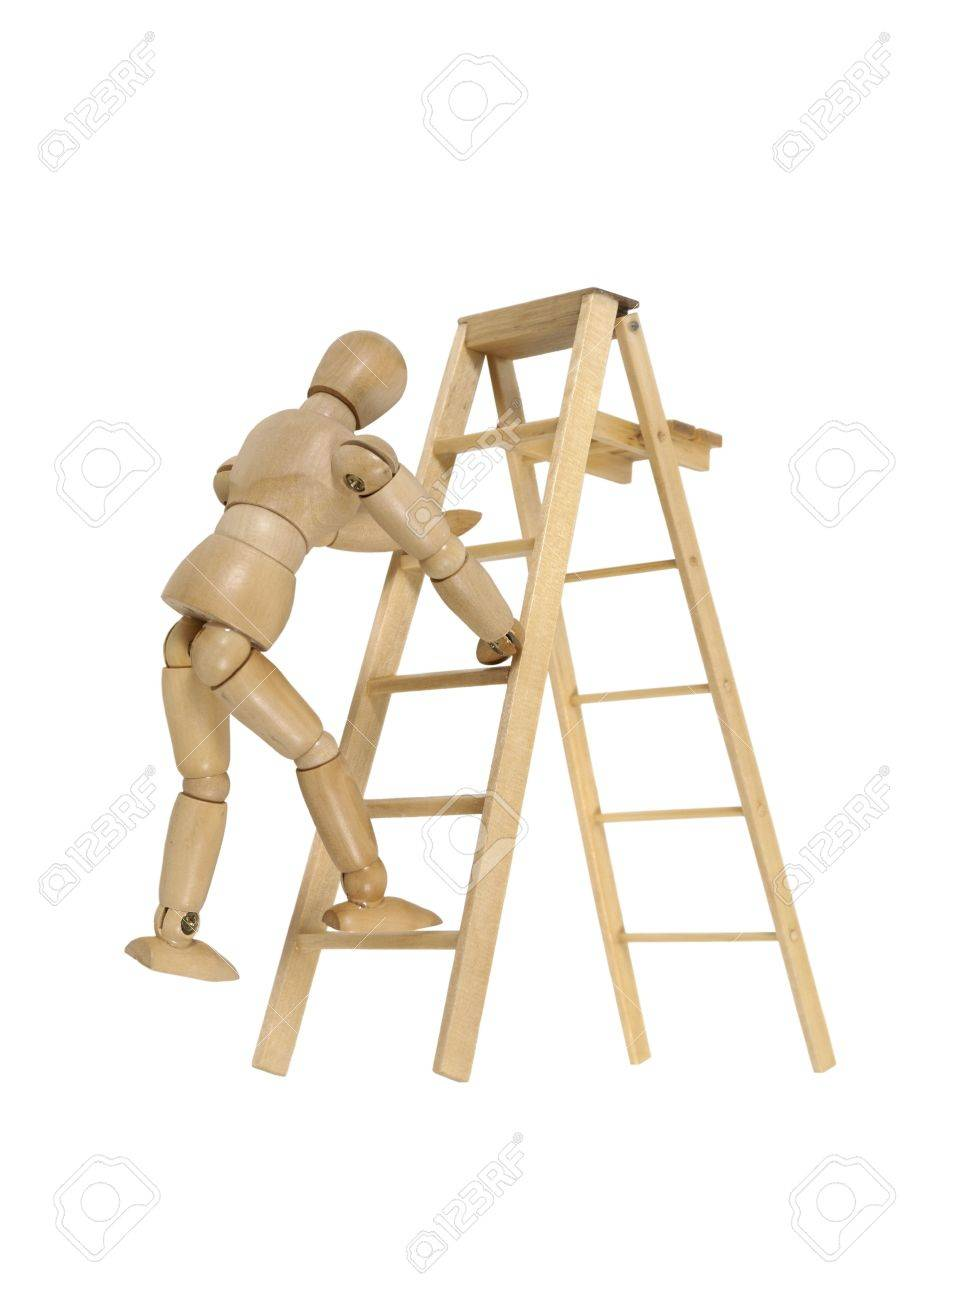 climbing a ladder used for moving up or reaching higher goals climbing a ladder used for moving up or reaching higher goals stock photo 7764996